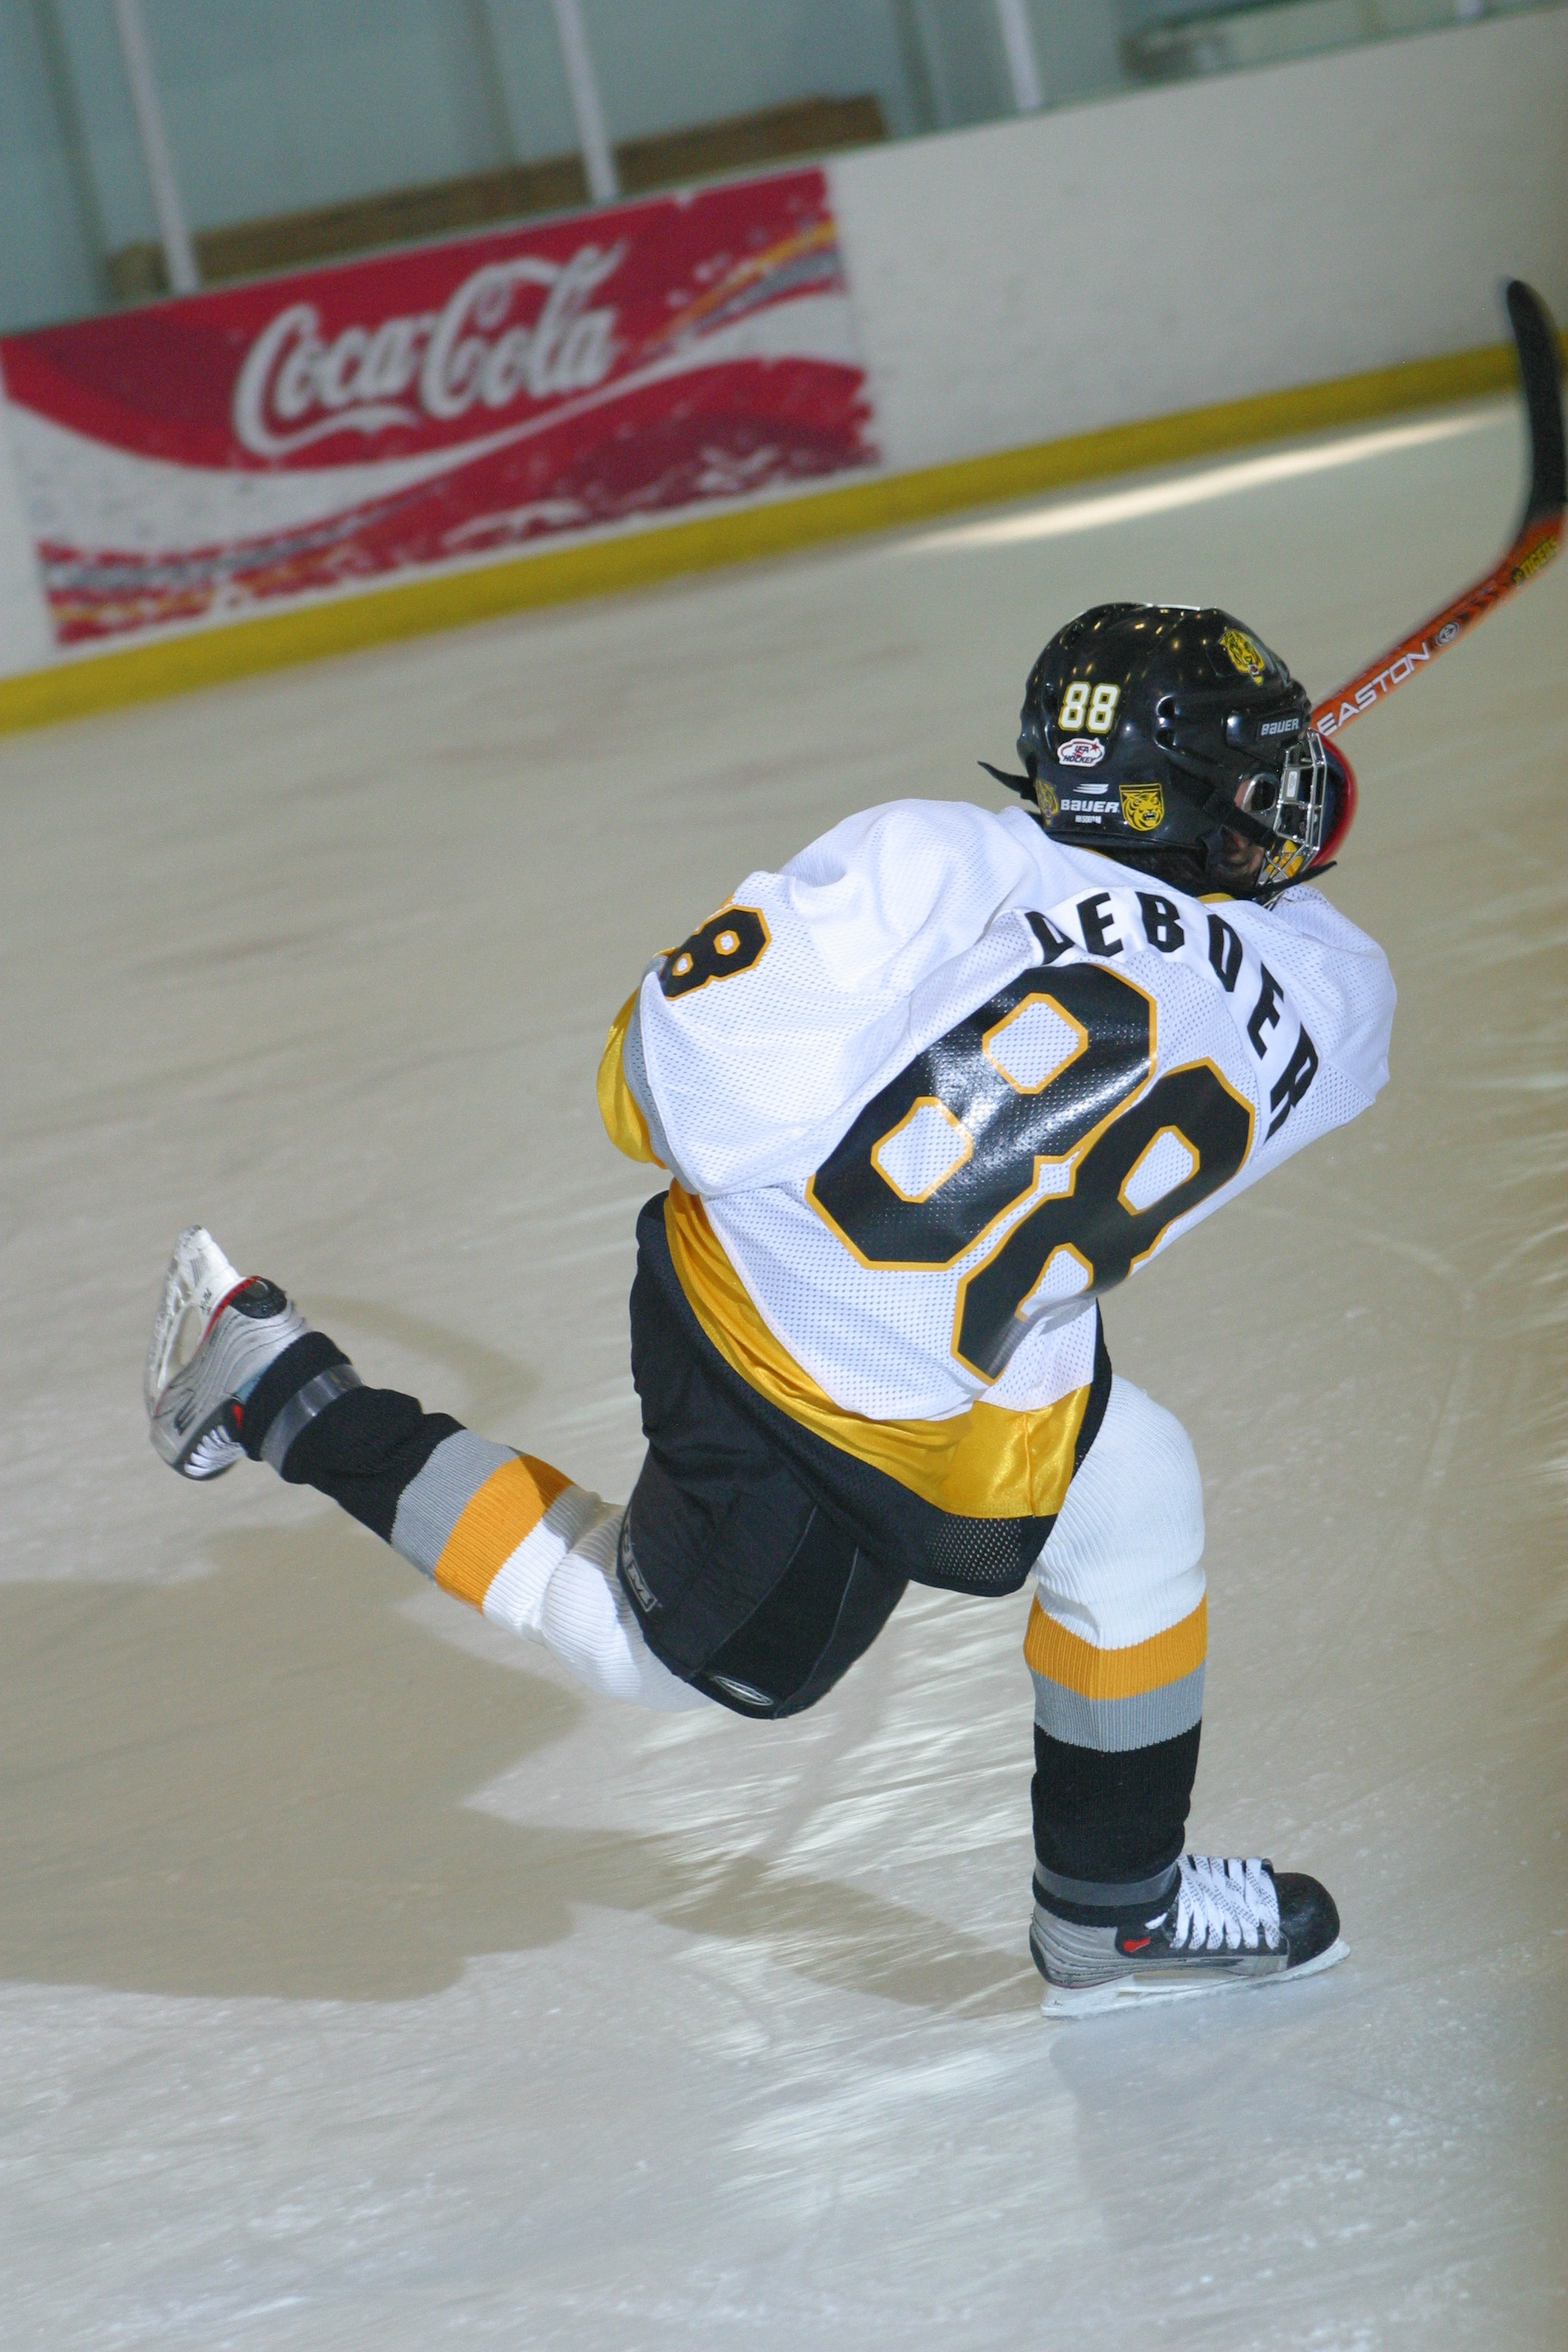 Hockey 05 example.JPG